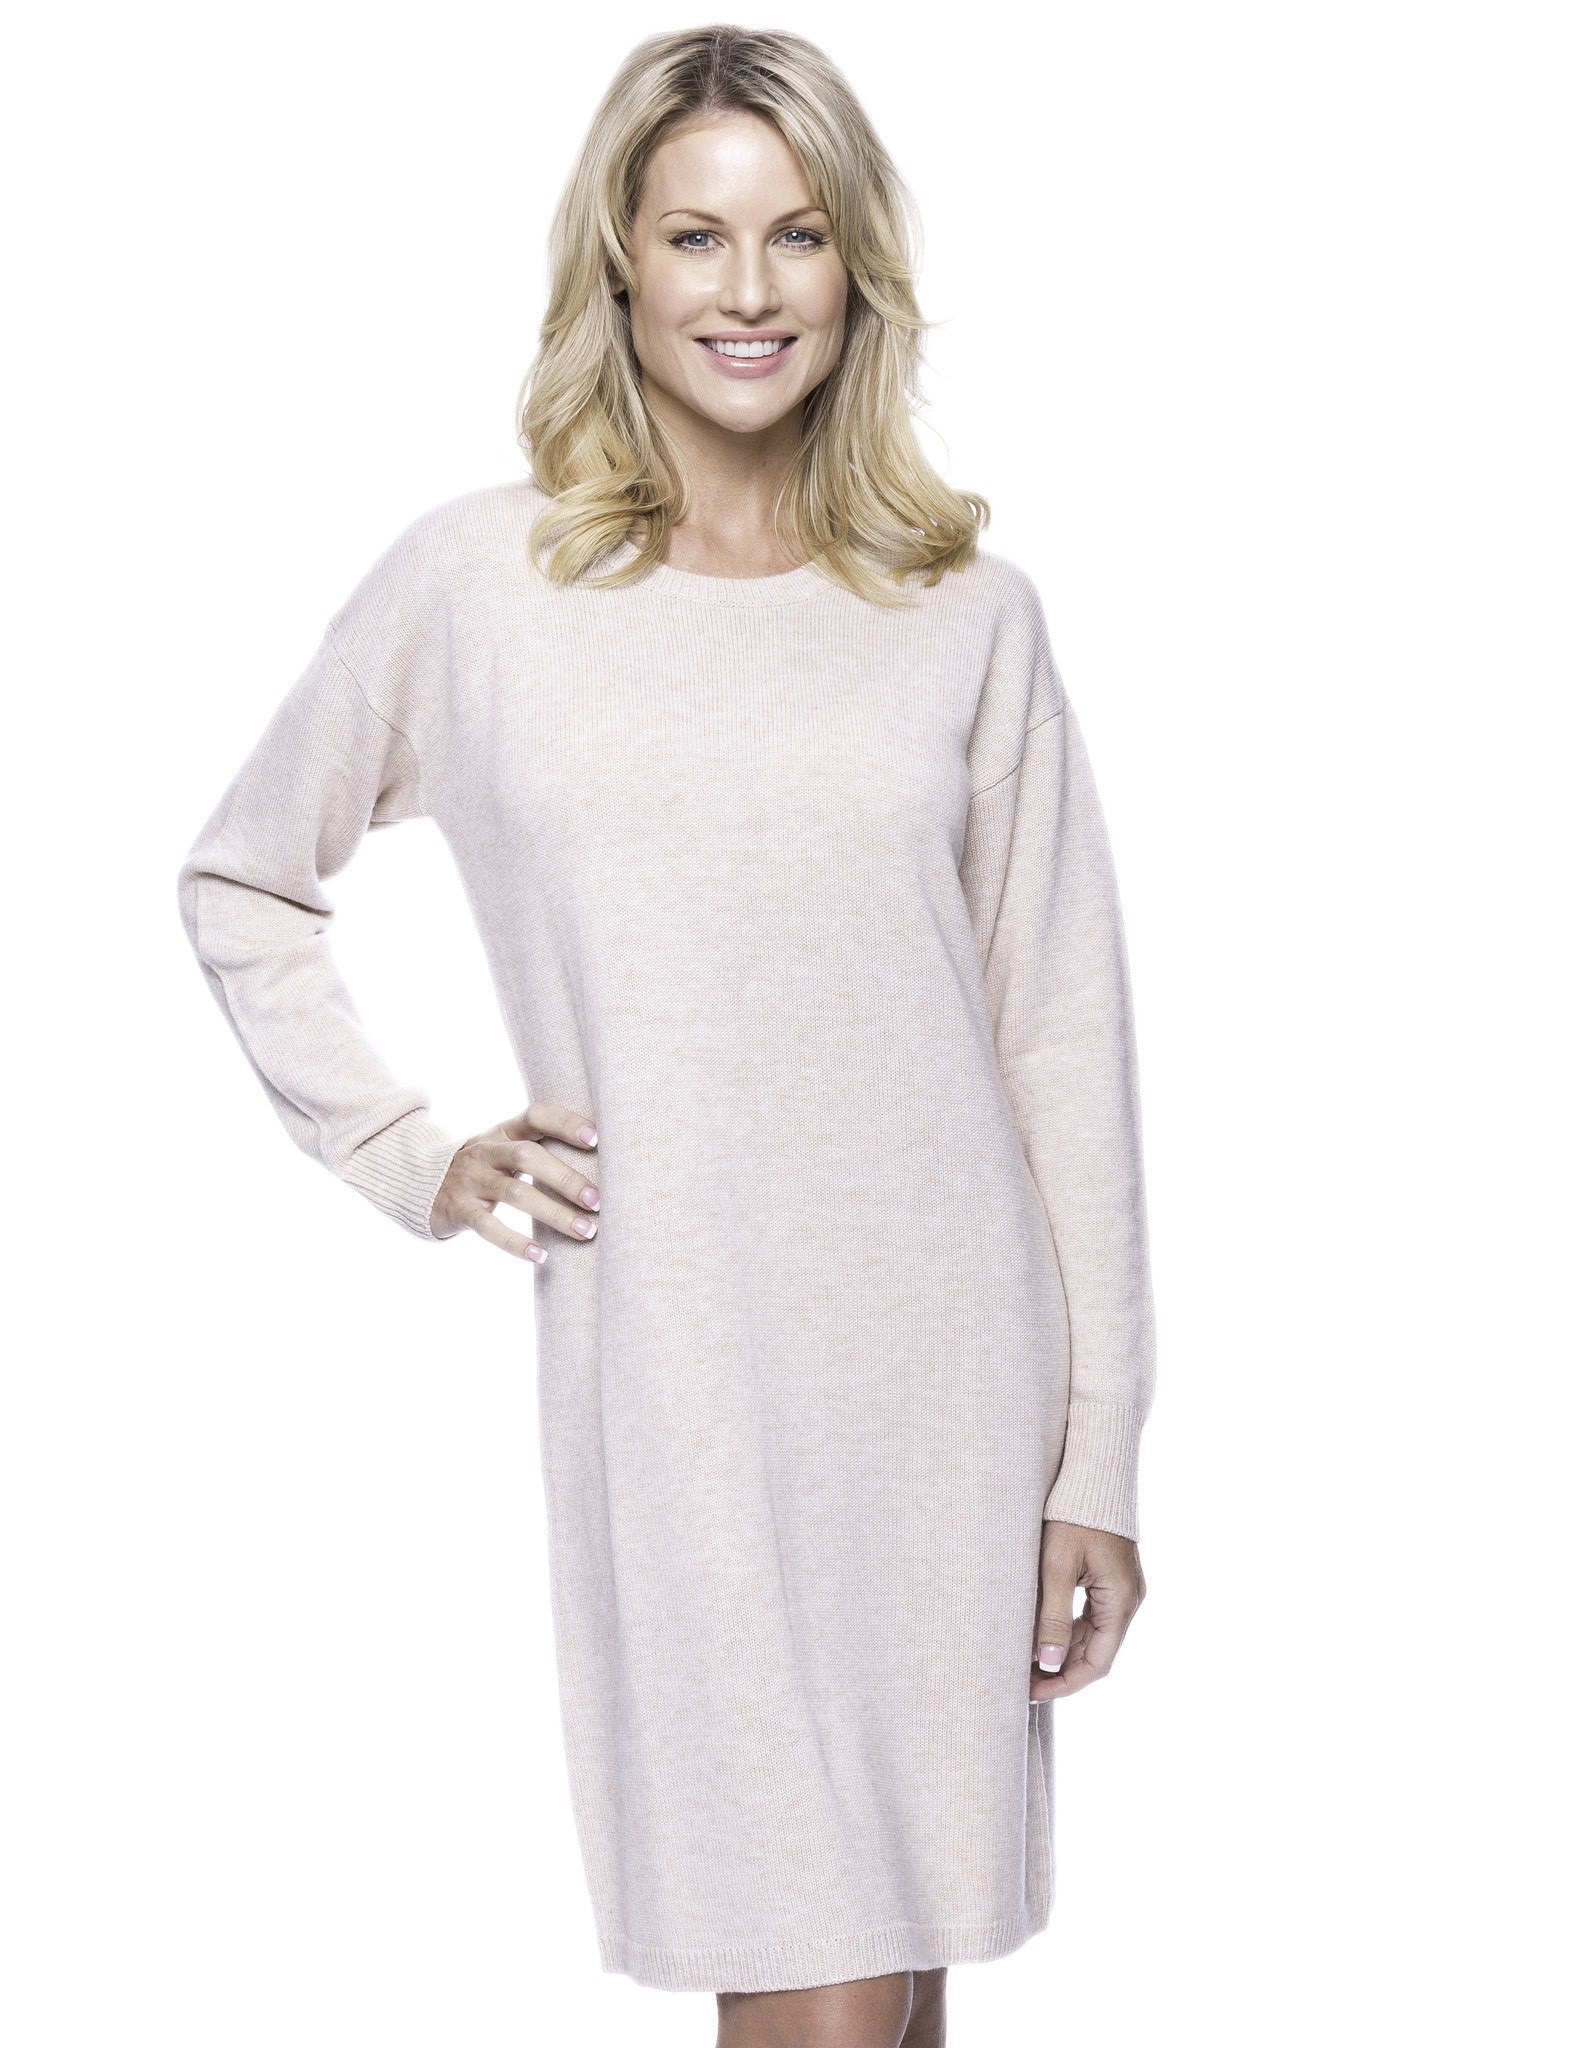 Wool Blend Sweater Dress - Oatmeal